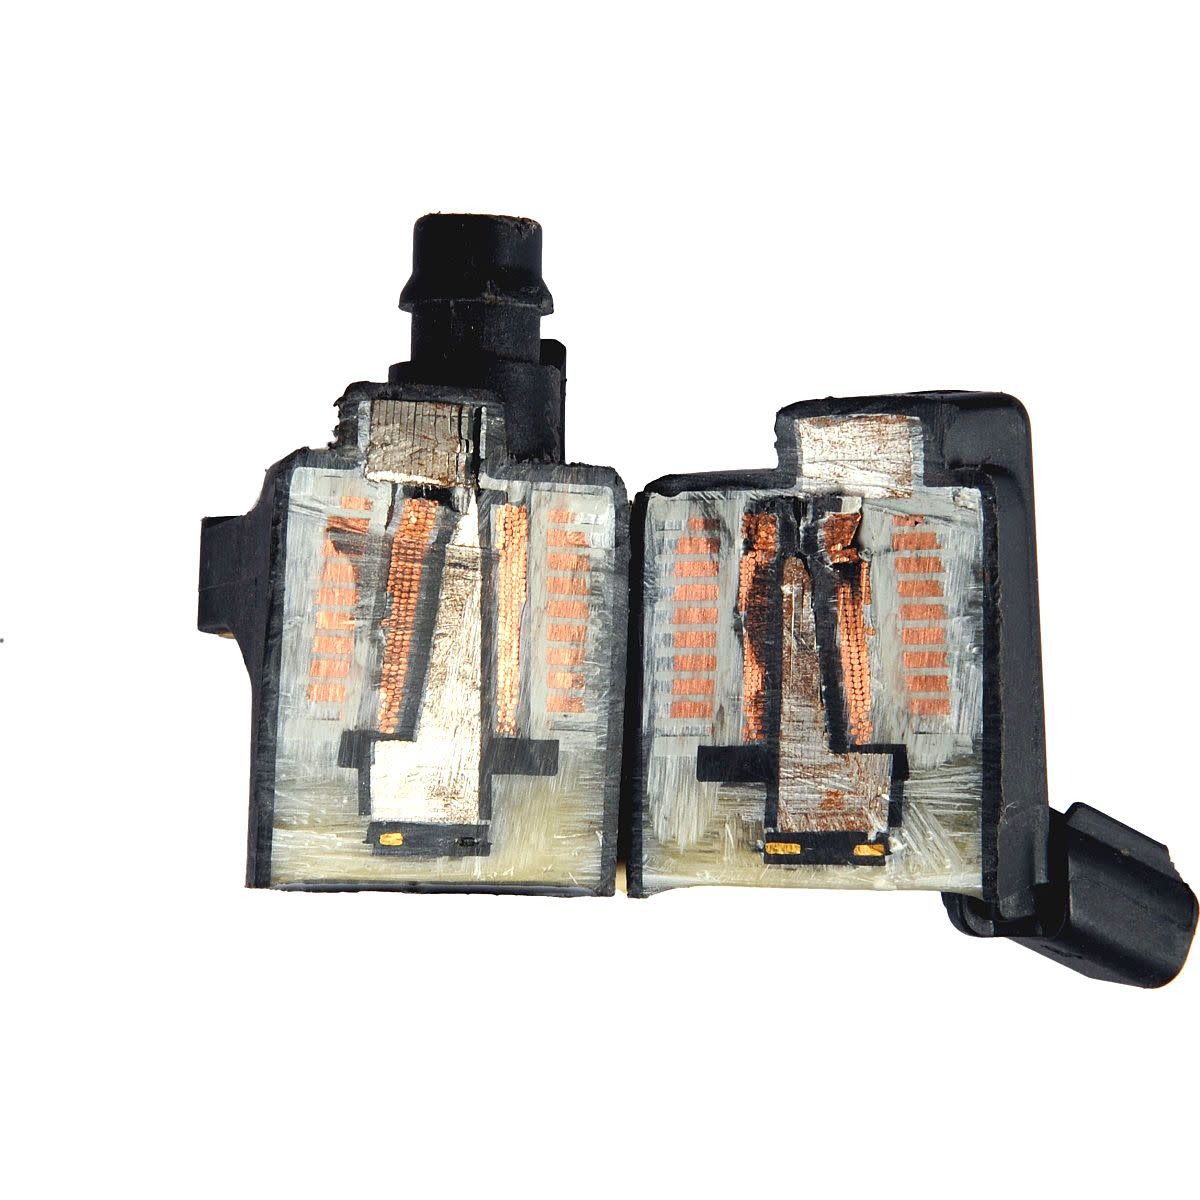 Windings like in this ignition coil can develop electrical opens that cause stalling when warmed.